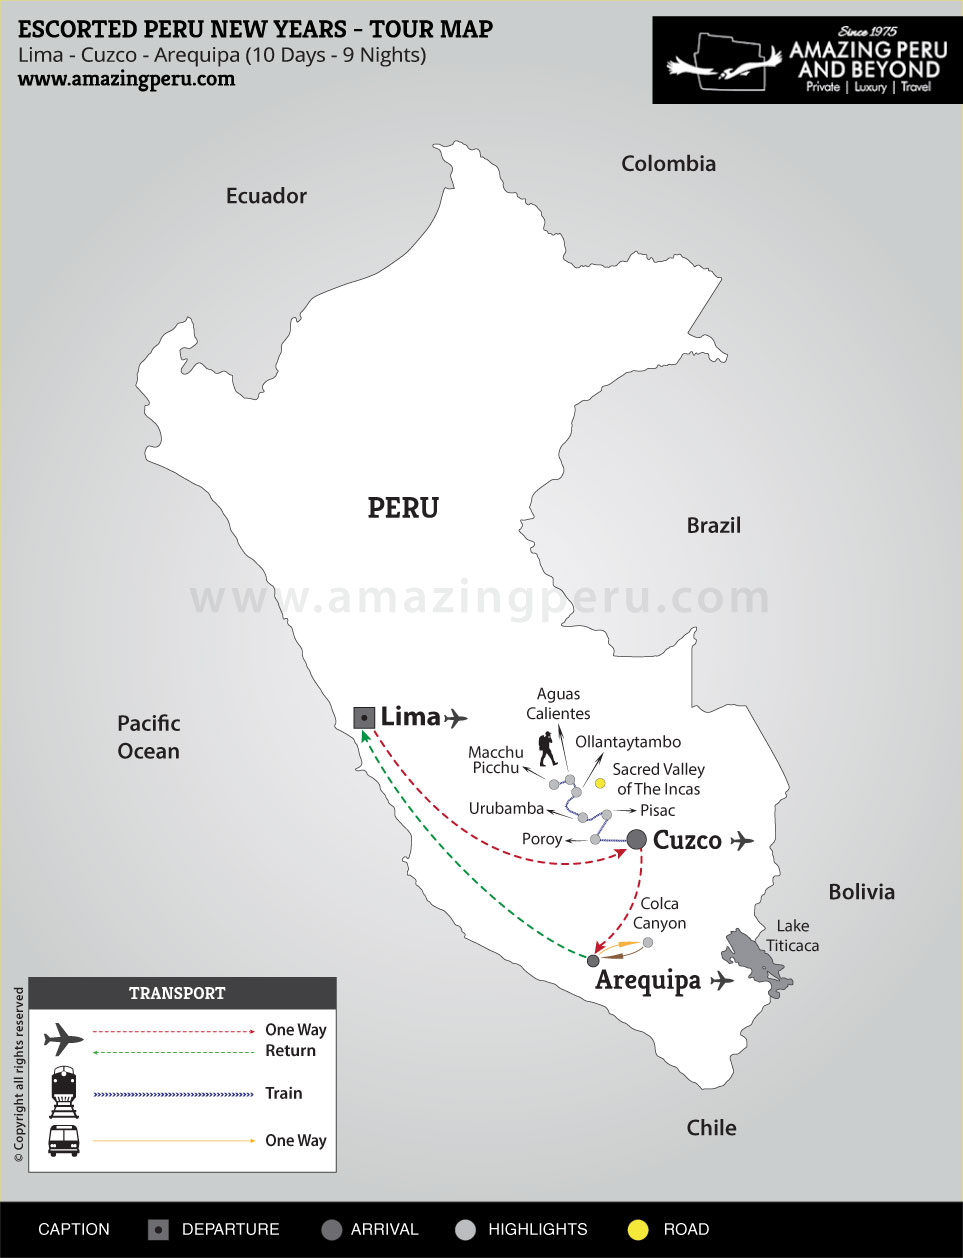 2019-20 Escorted Peru New Years 2 - 10 days / 9 nights.